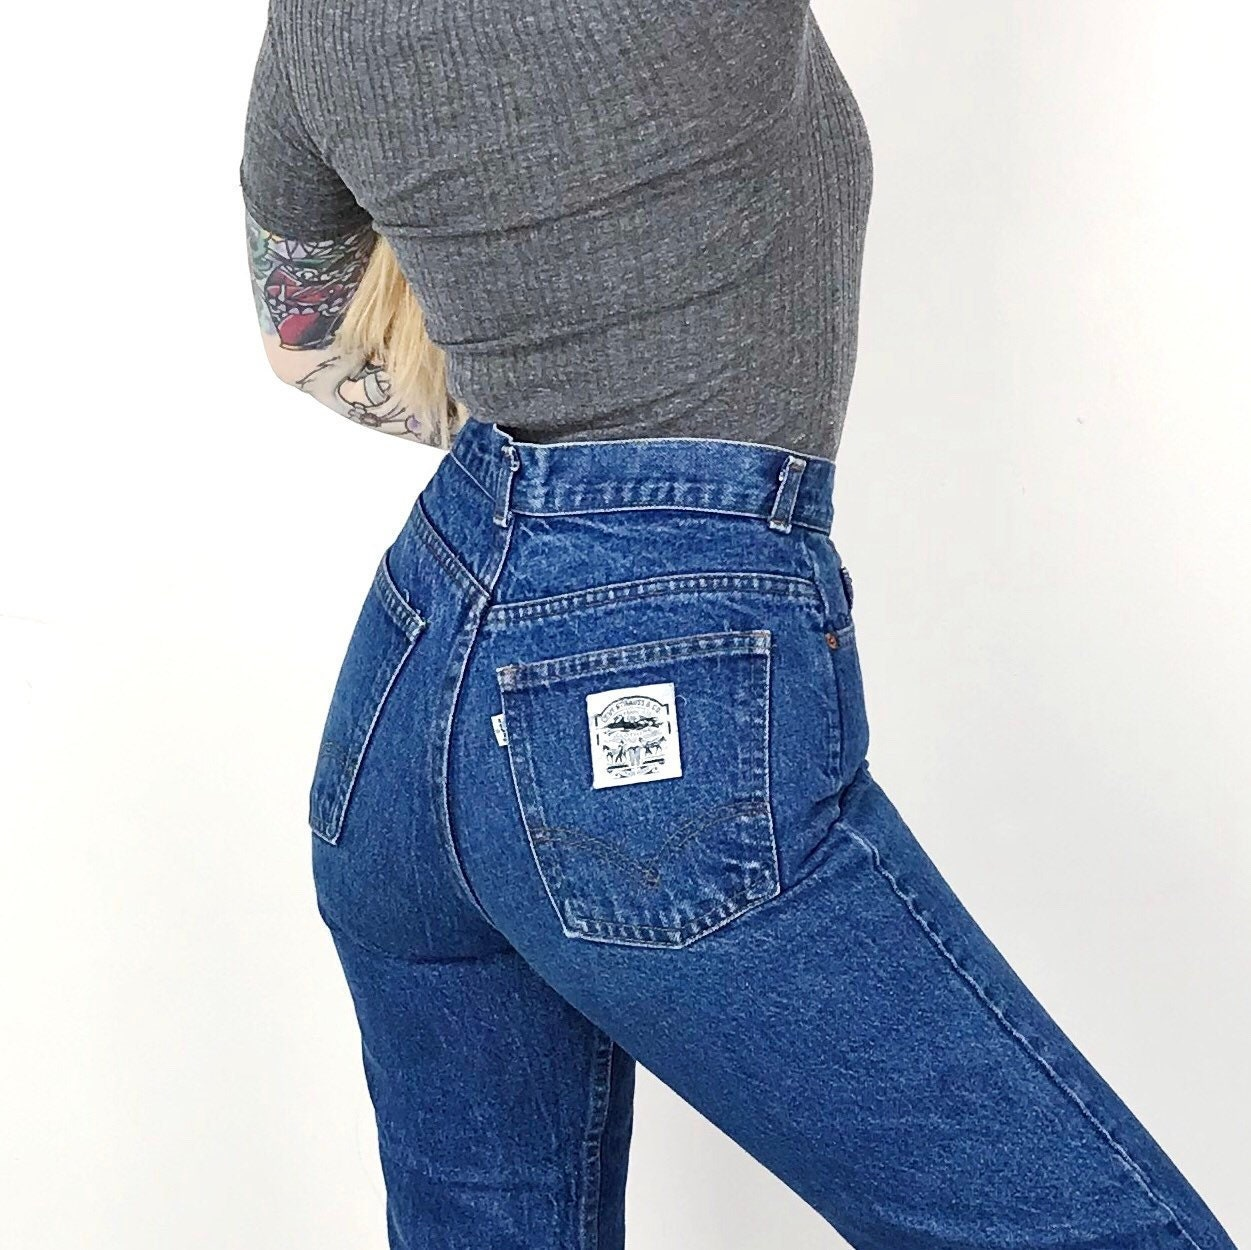 Levi's White Tab High Waisted Classic Fit 70's Vintage Mom Jeans Women's size 27 4 Small S